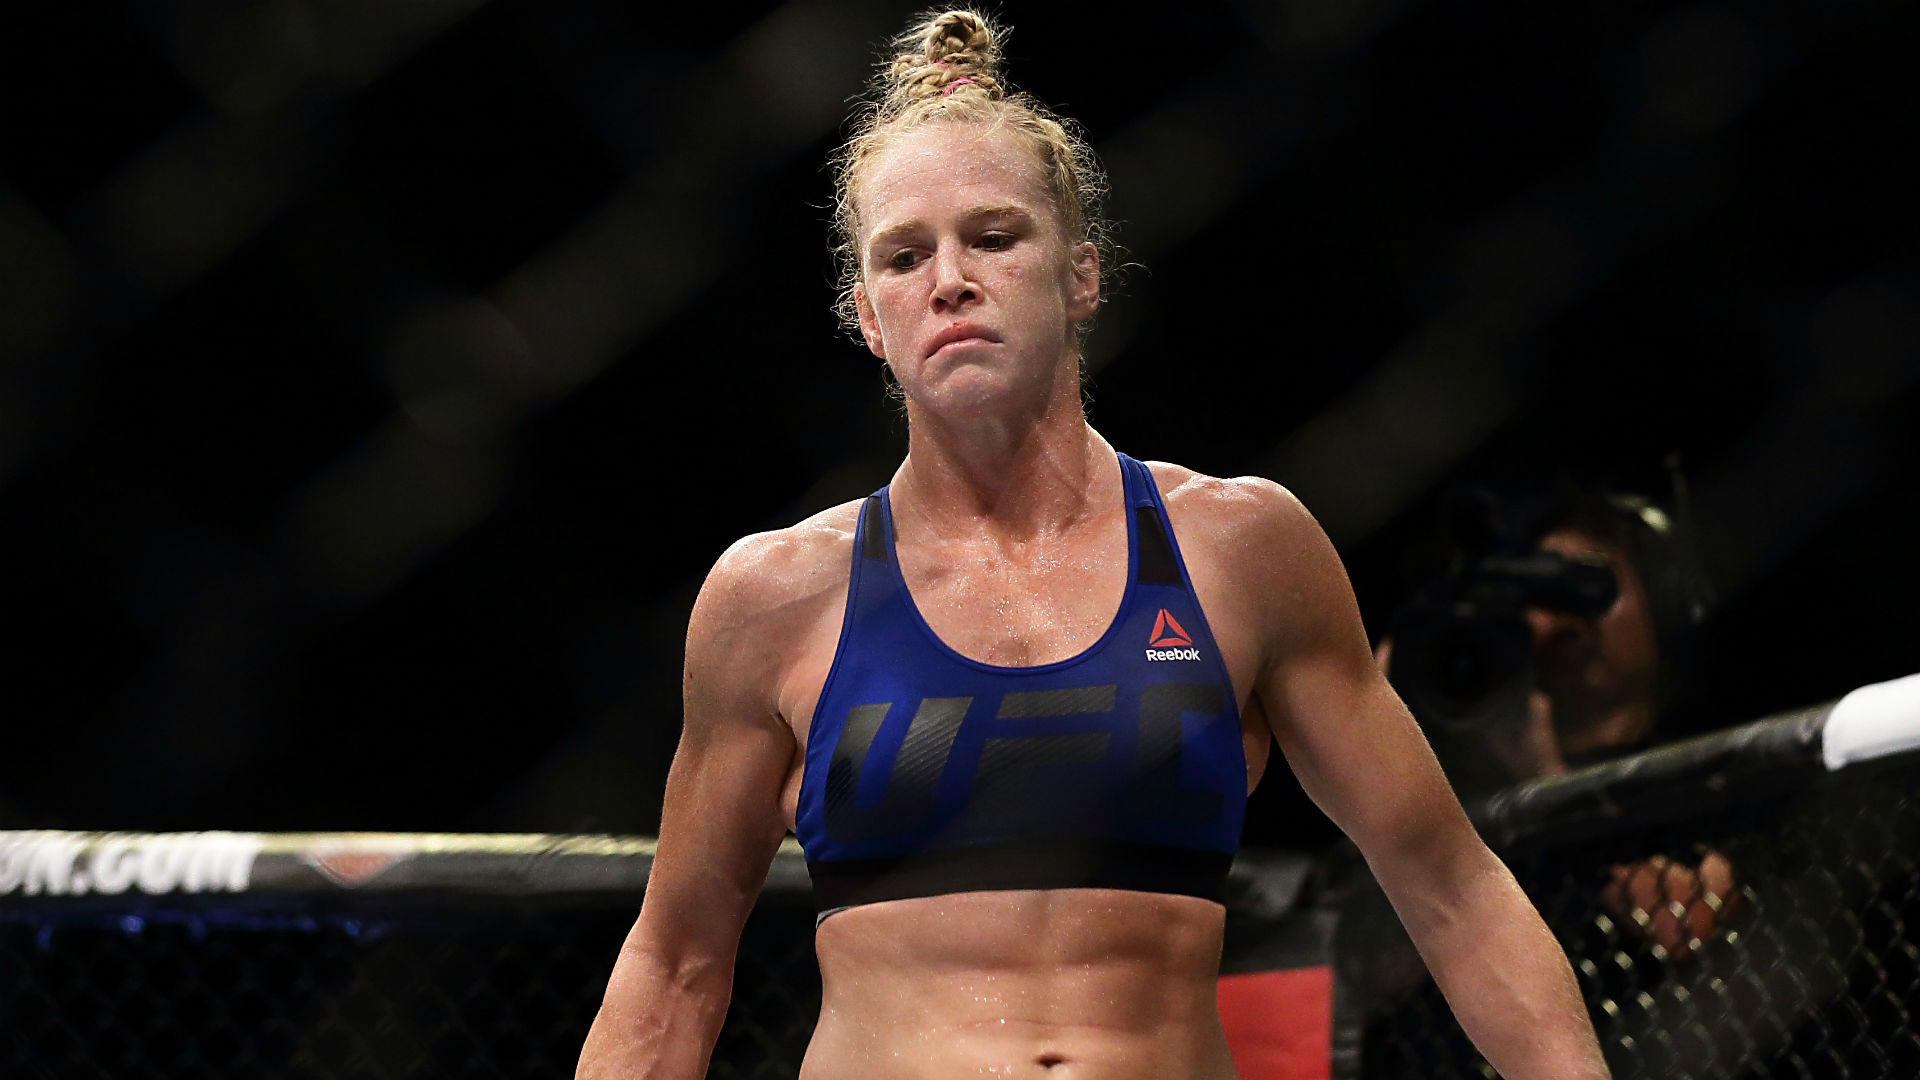 UFC 219 Cyborg vs. Holm: Fight date, PPV price, how to watch, live stream